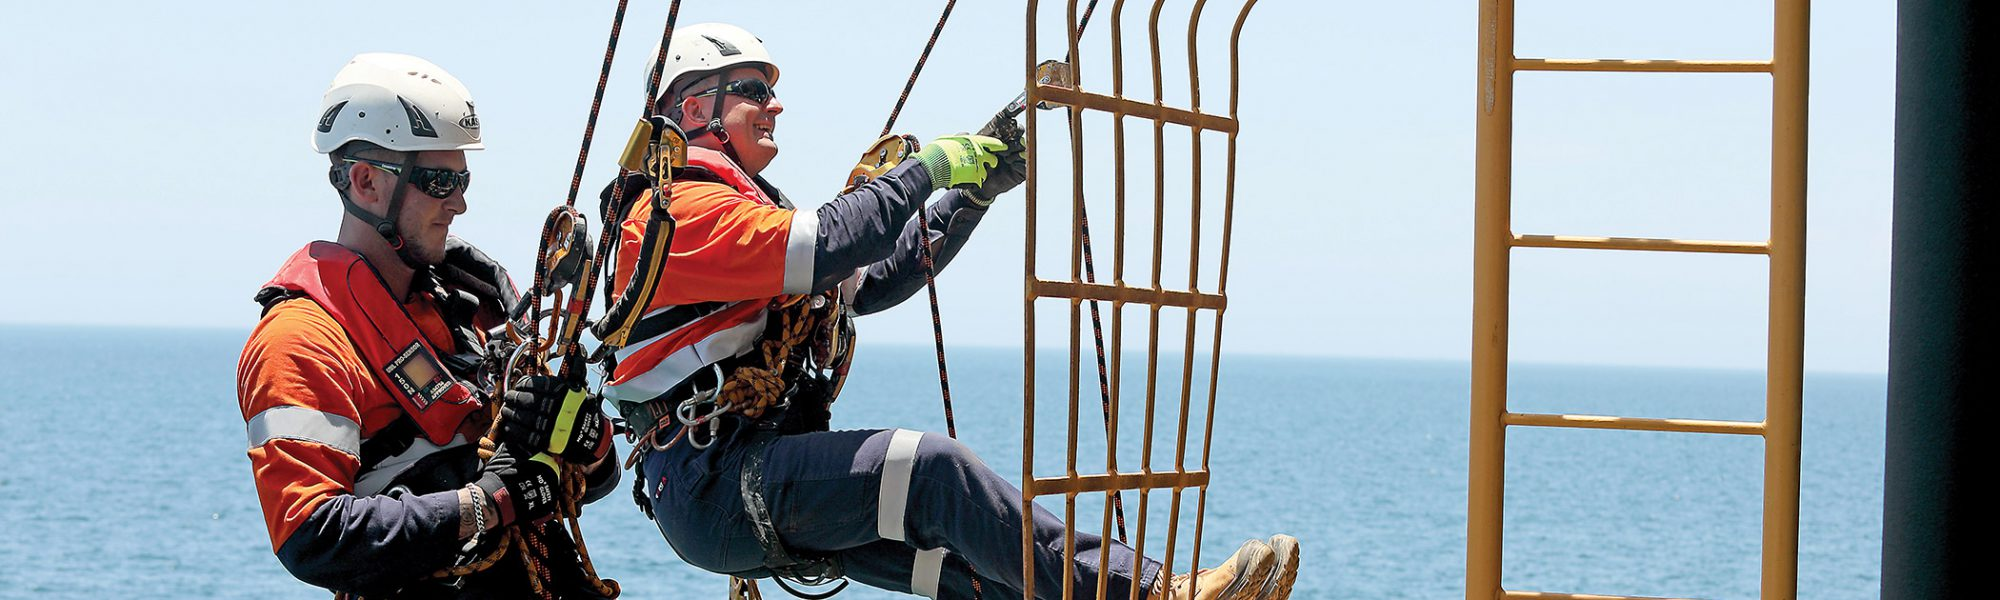 cape altrad, altrad cape plc, cape plc altrad, altrad rope access services